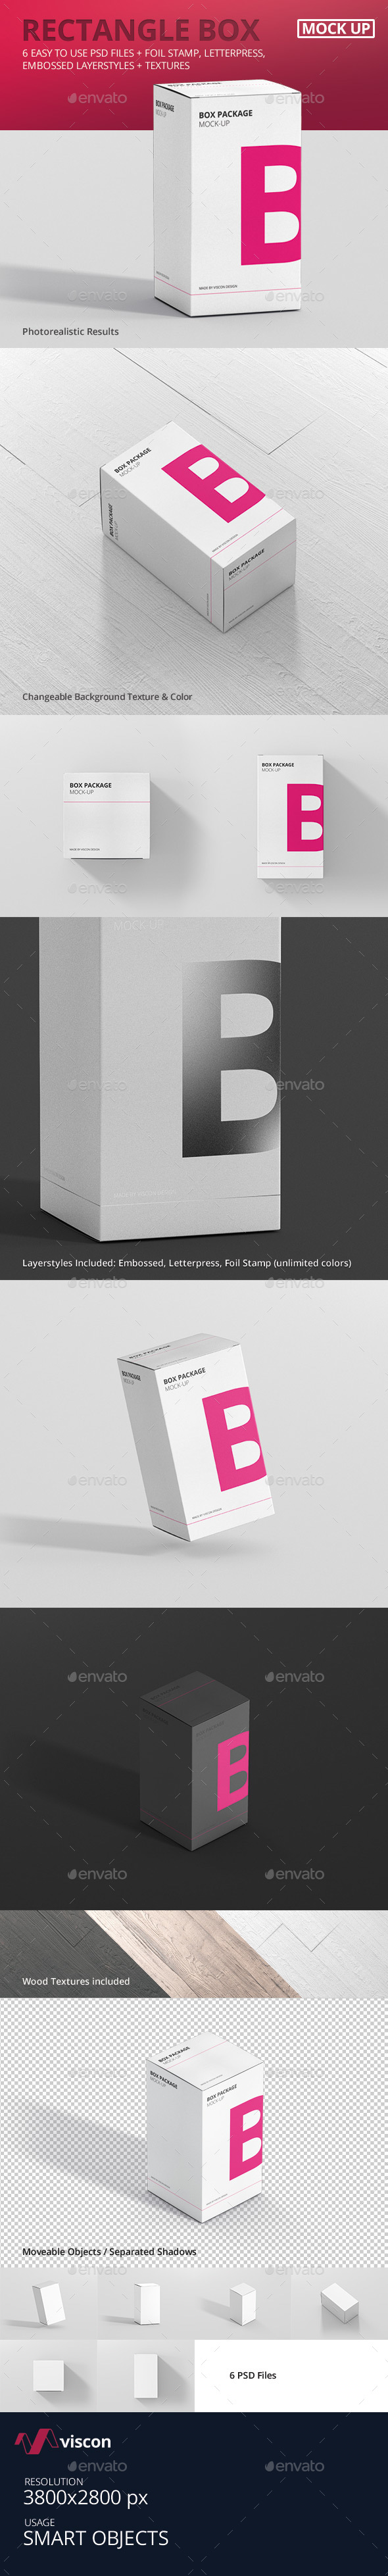 Package Box Mock-Up - Rectangle